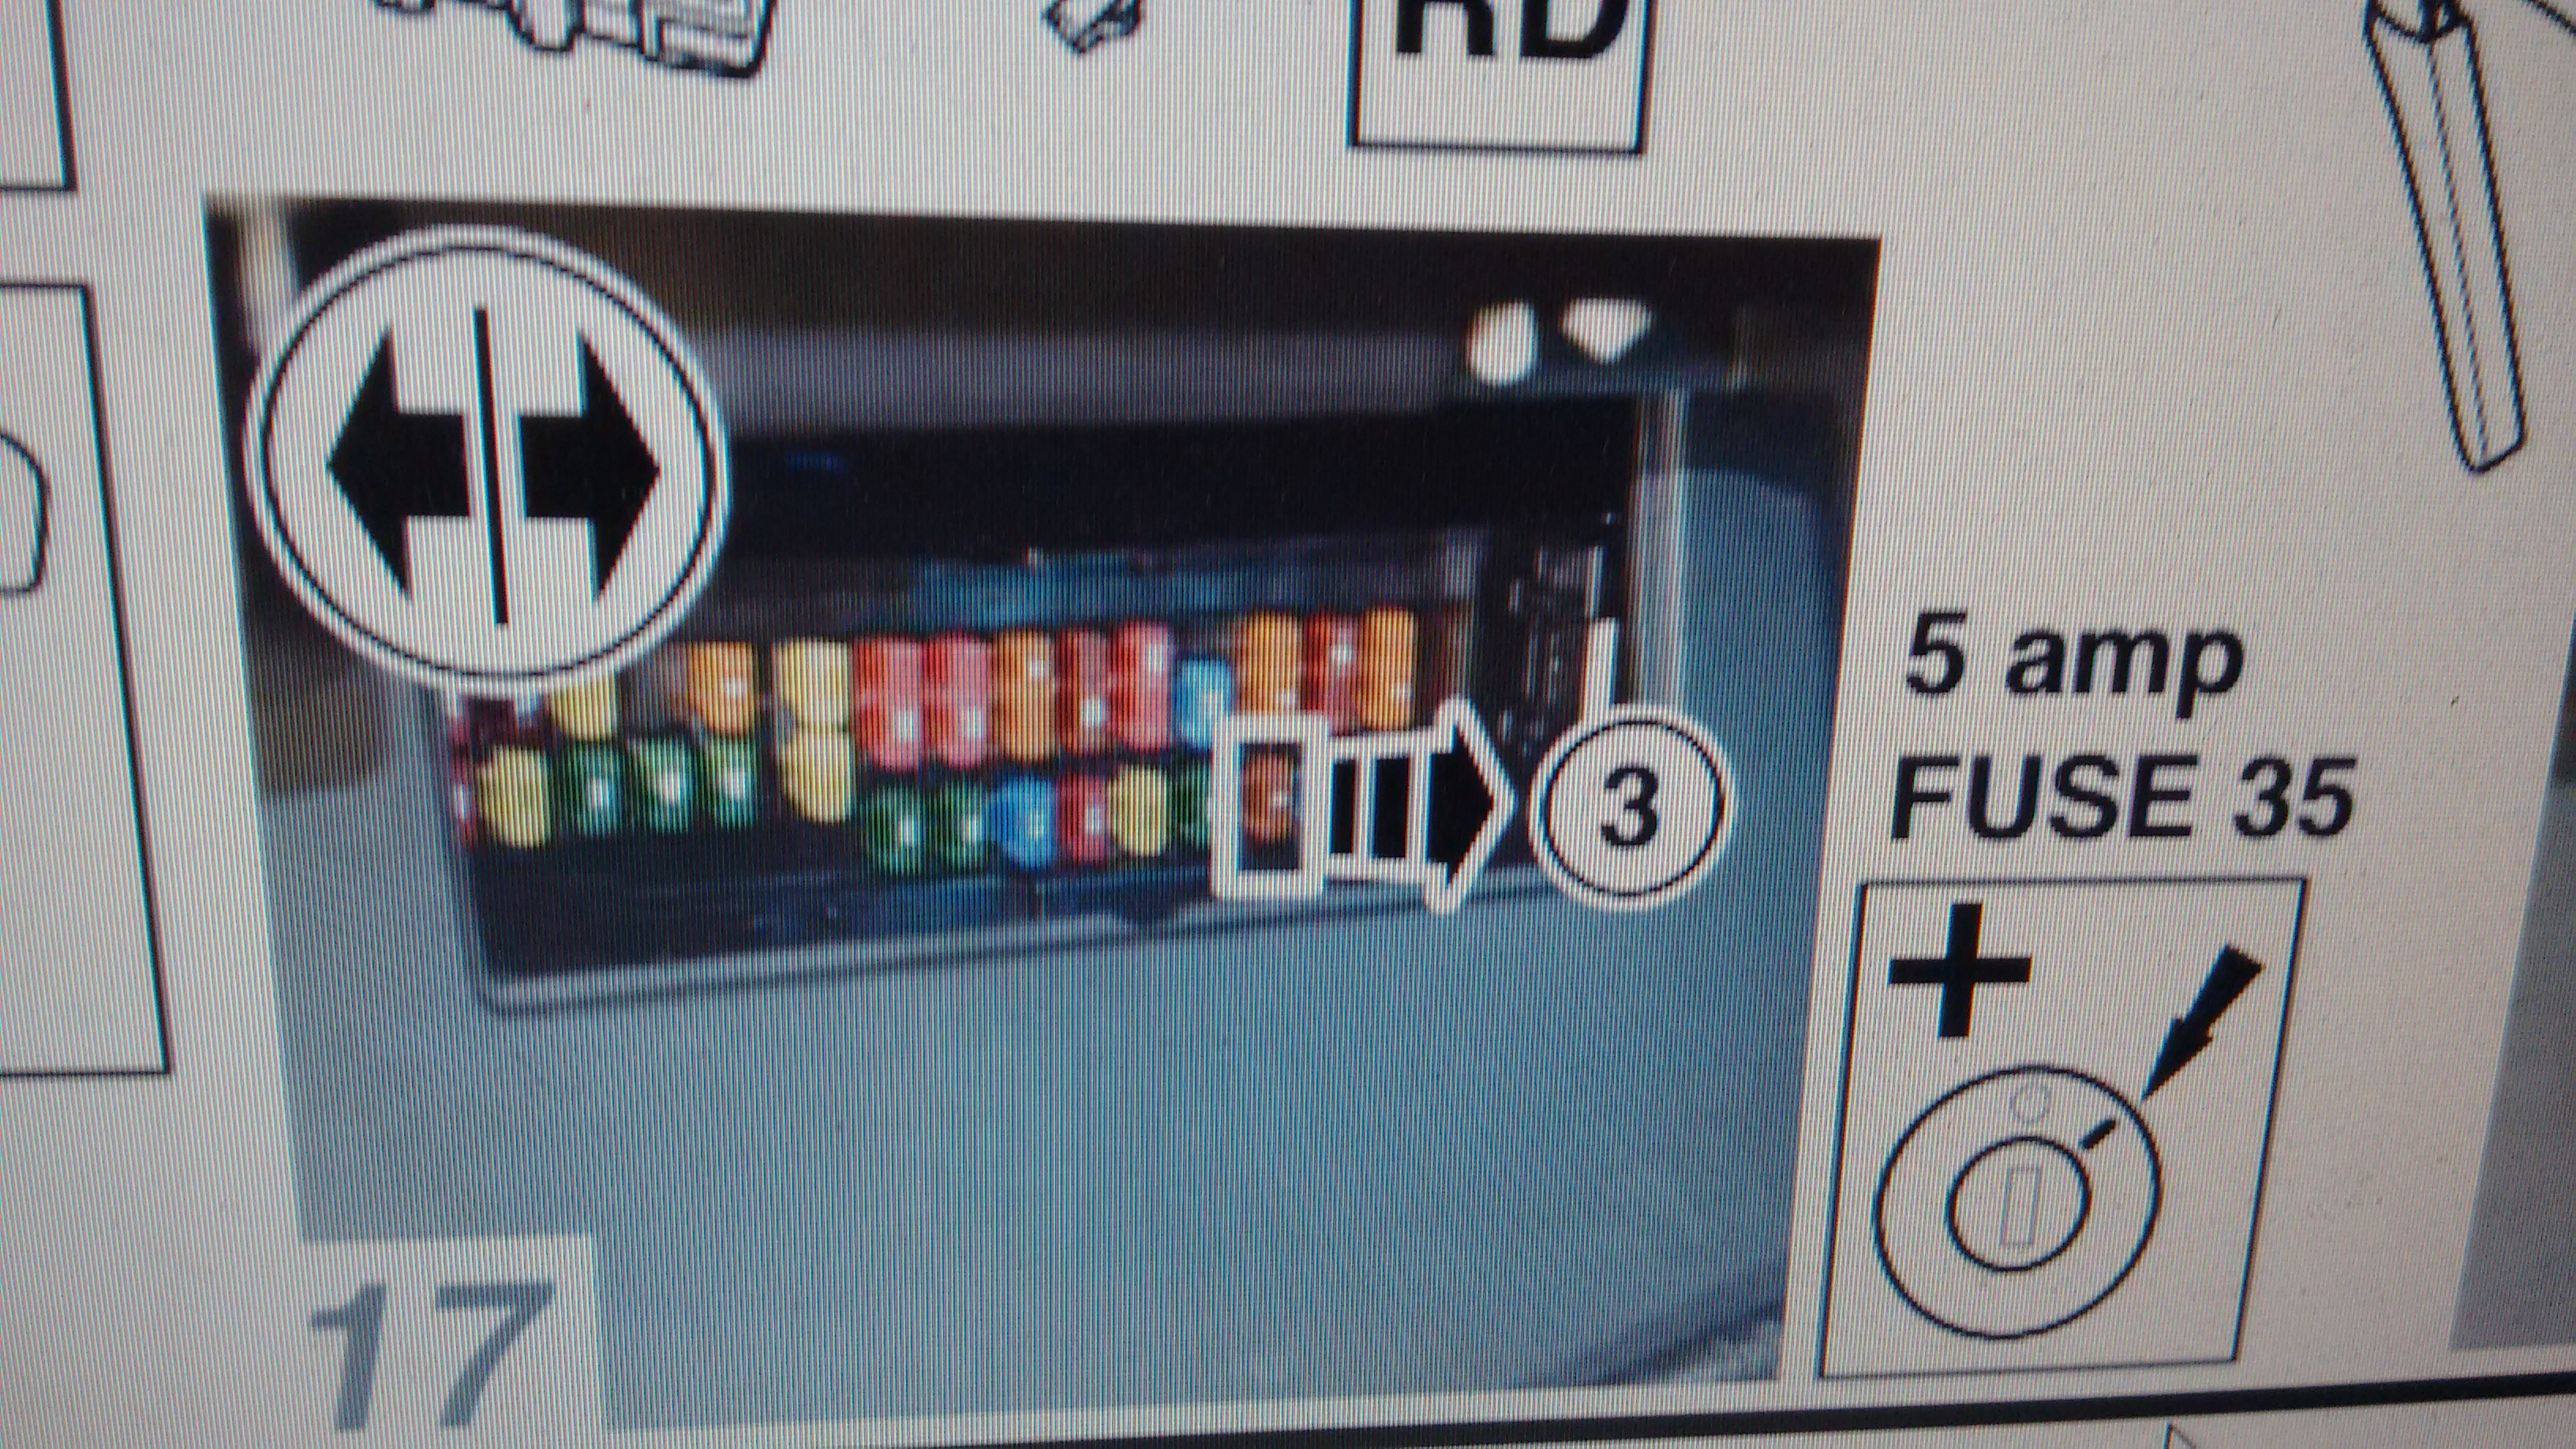 [SCHEMATICS_44OR]  Fuse box location mondeo mk5 - Ford Mondeo / Vignale Club - Ford Owners  Club - Ford Forums | Ford Mondeo Fuse Box Location |  | Ford Owners Club